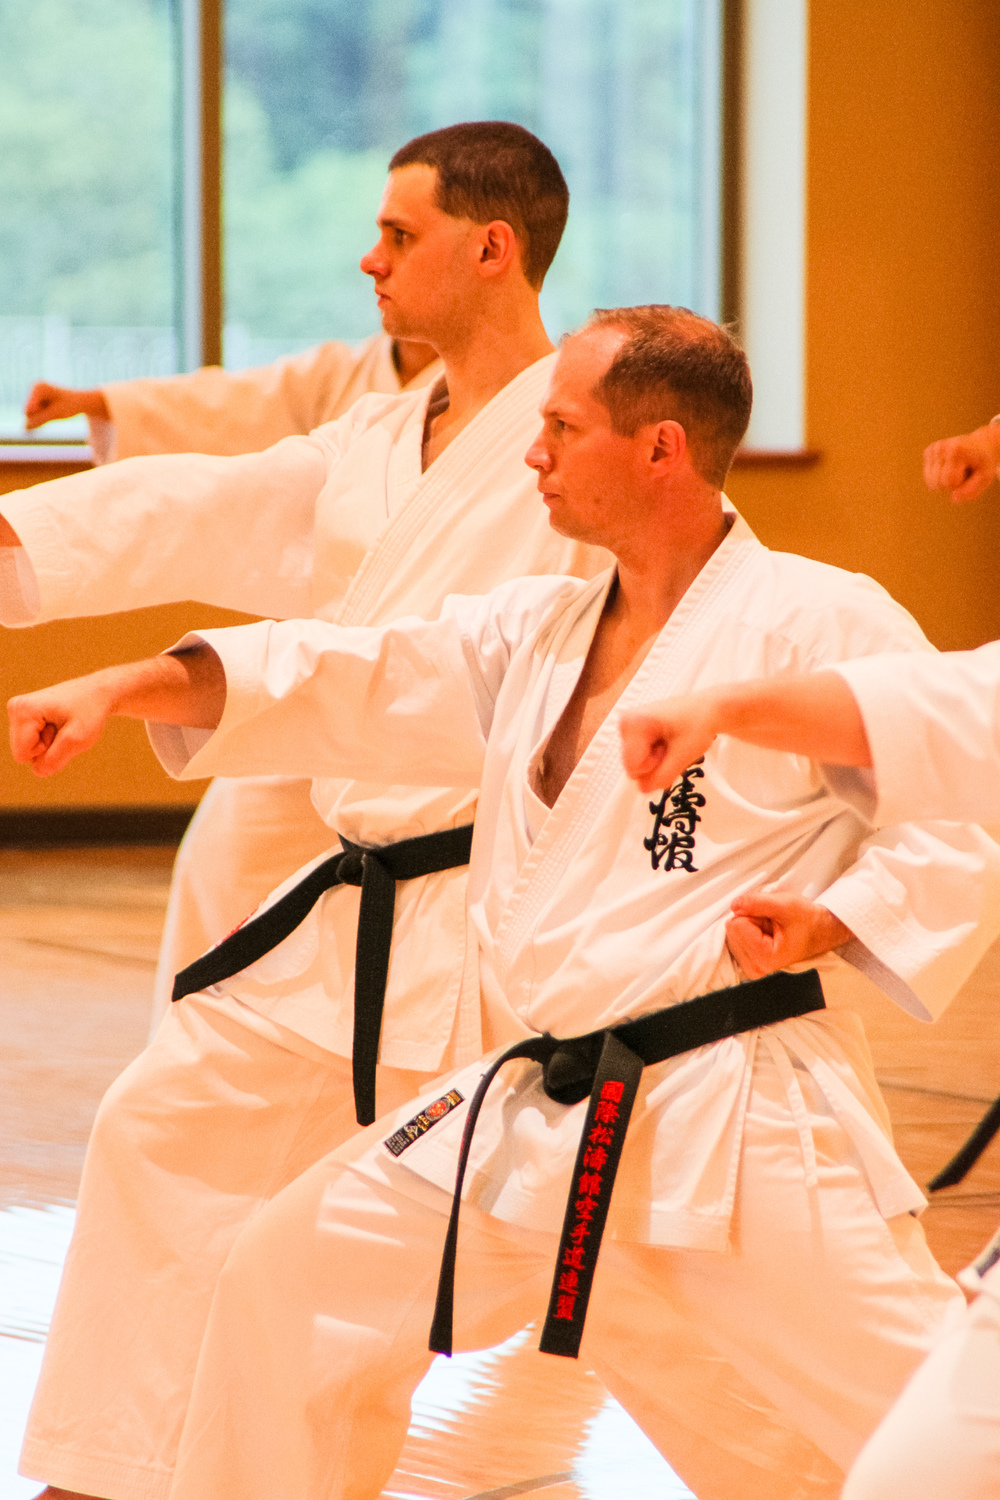 Training at our Kanazawa seminar on 7/2/13.